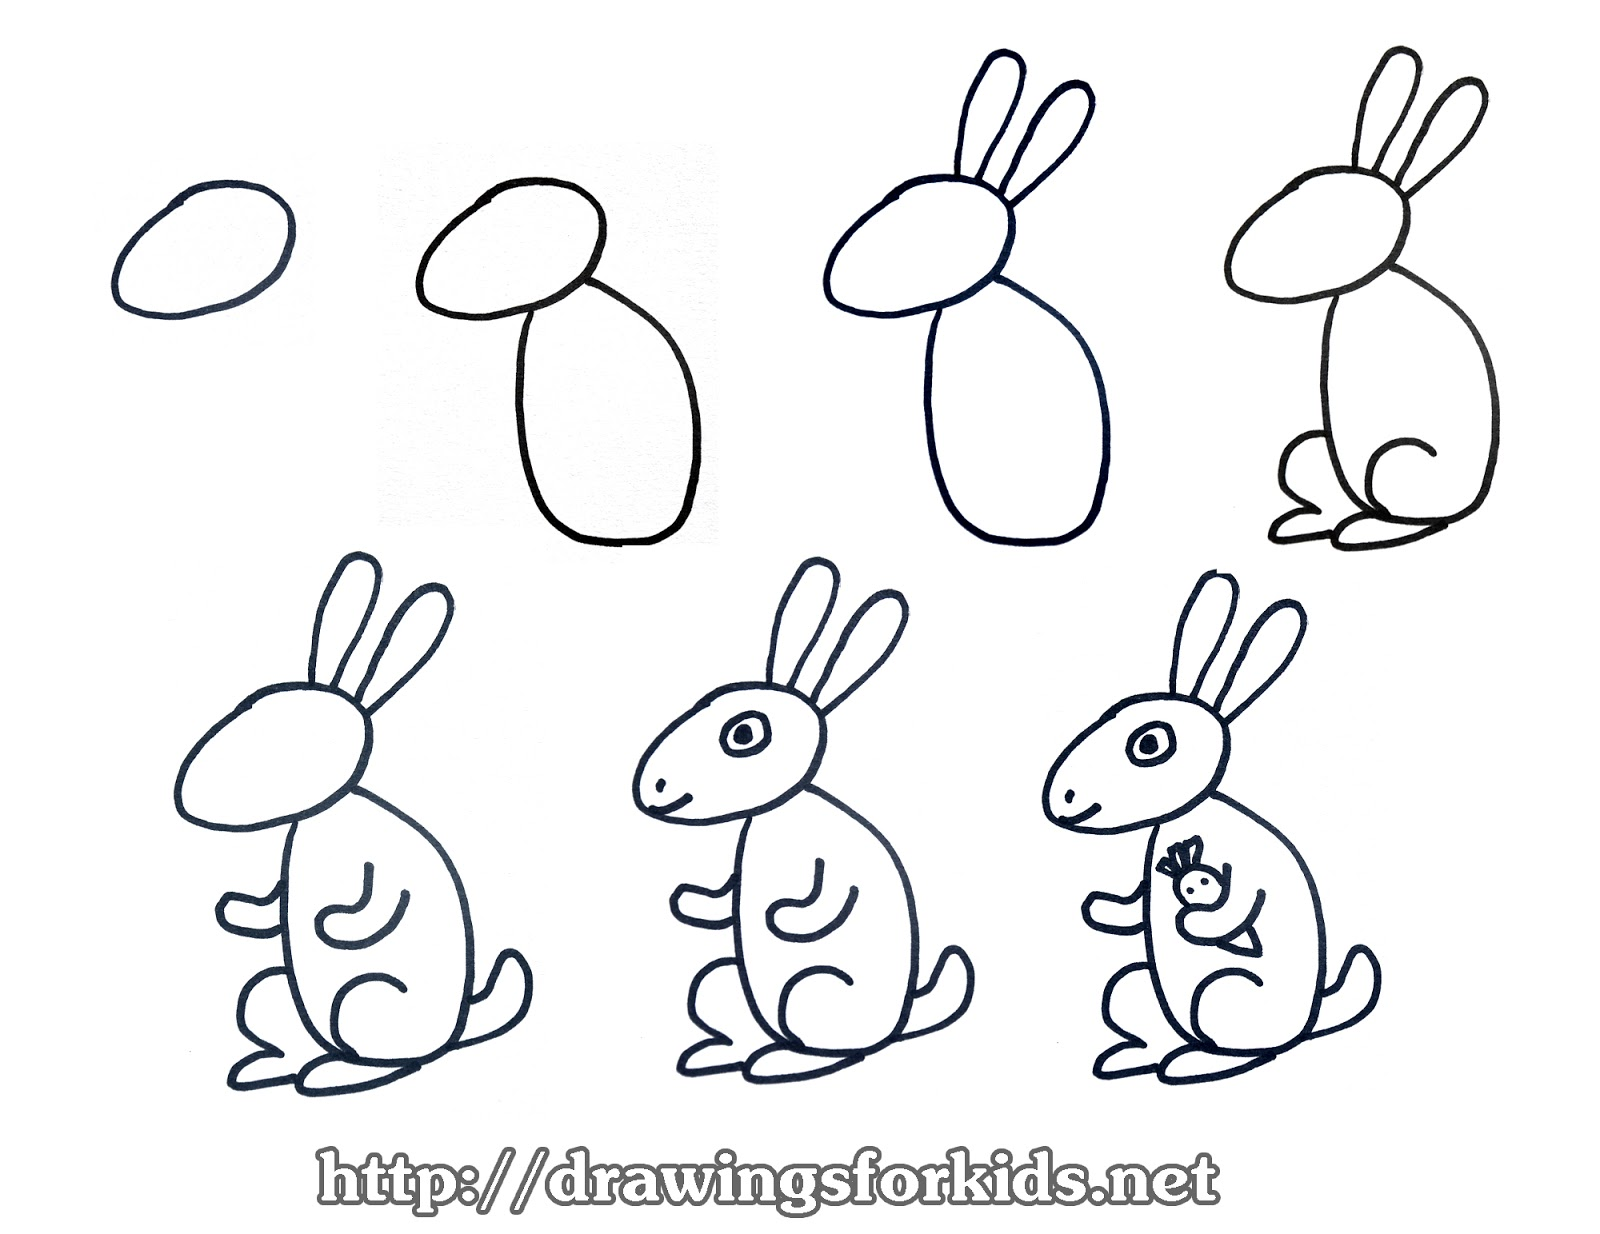 Uncategorized How To Draw A Rabbit For Kids how to draw a rabbit for kids drawingsforkids net video tutorials minh